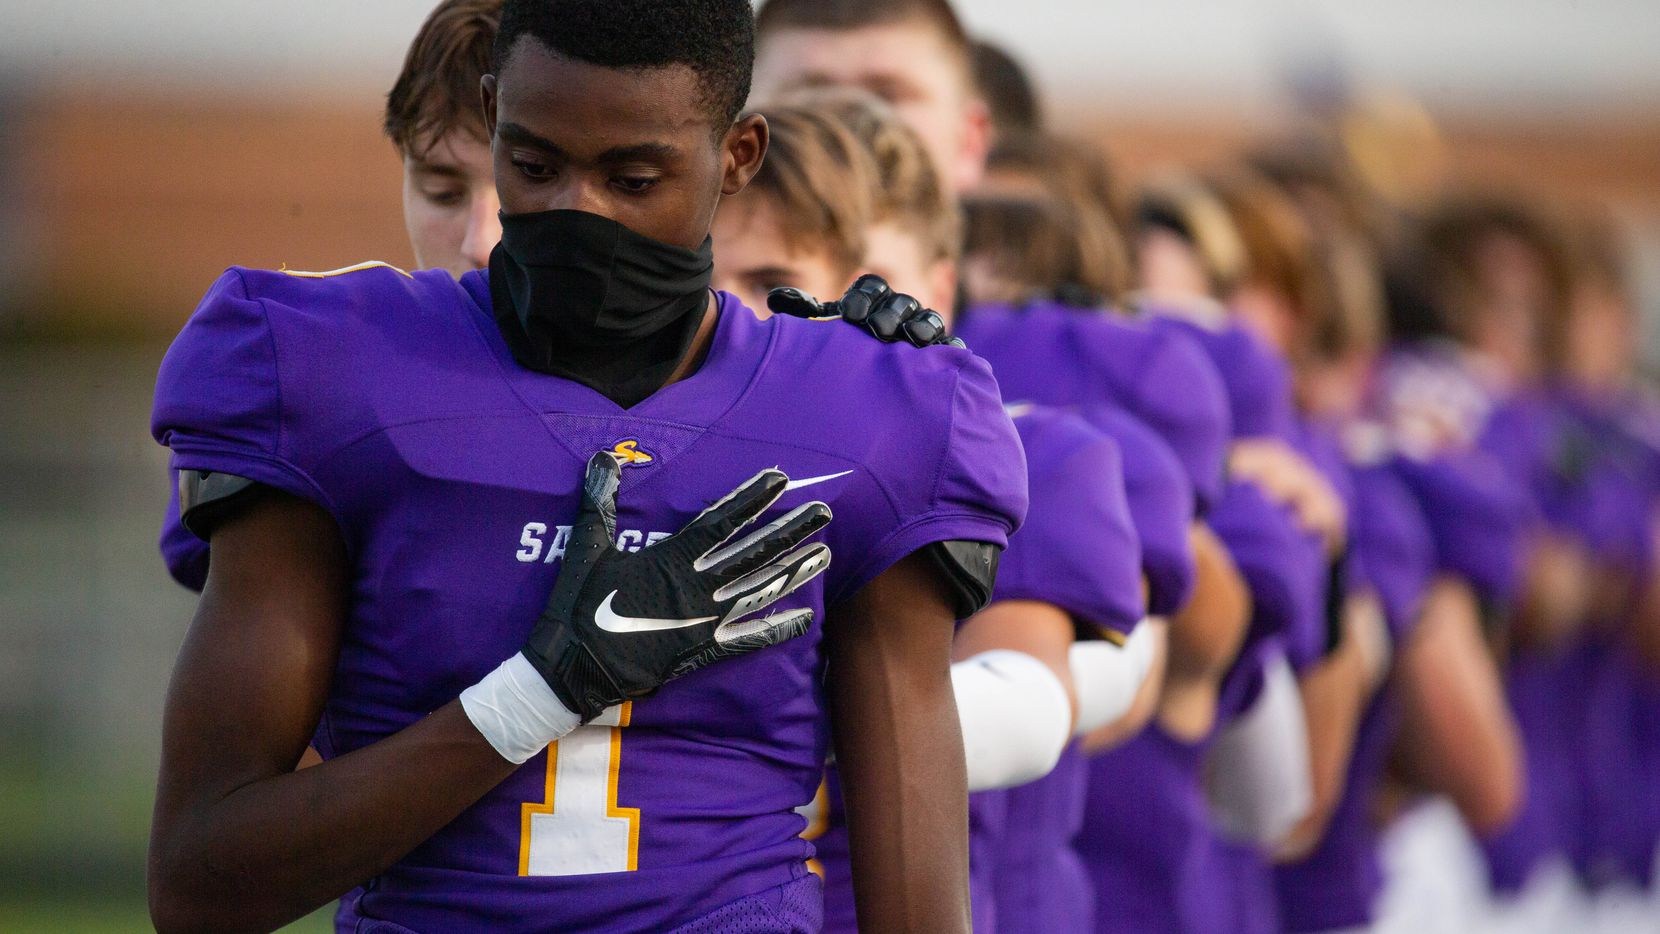 Sanger's Josh Henry wears a neck gaiter during the national anthem before the start of a game against Lake Worth High School on Sept. 4, 2020 in Sanger.